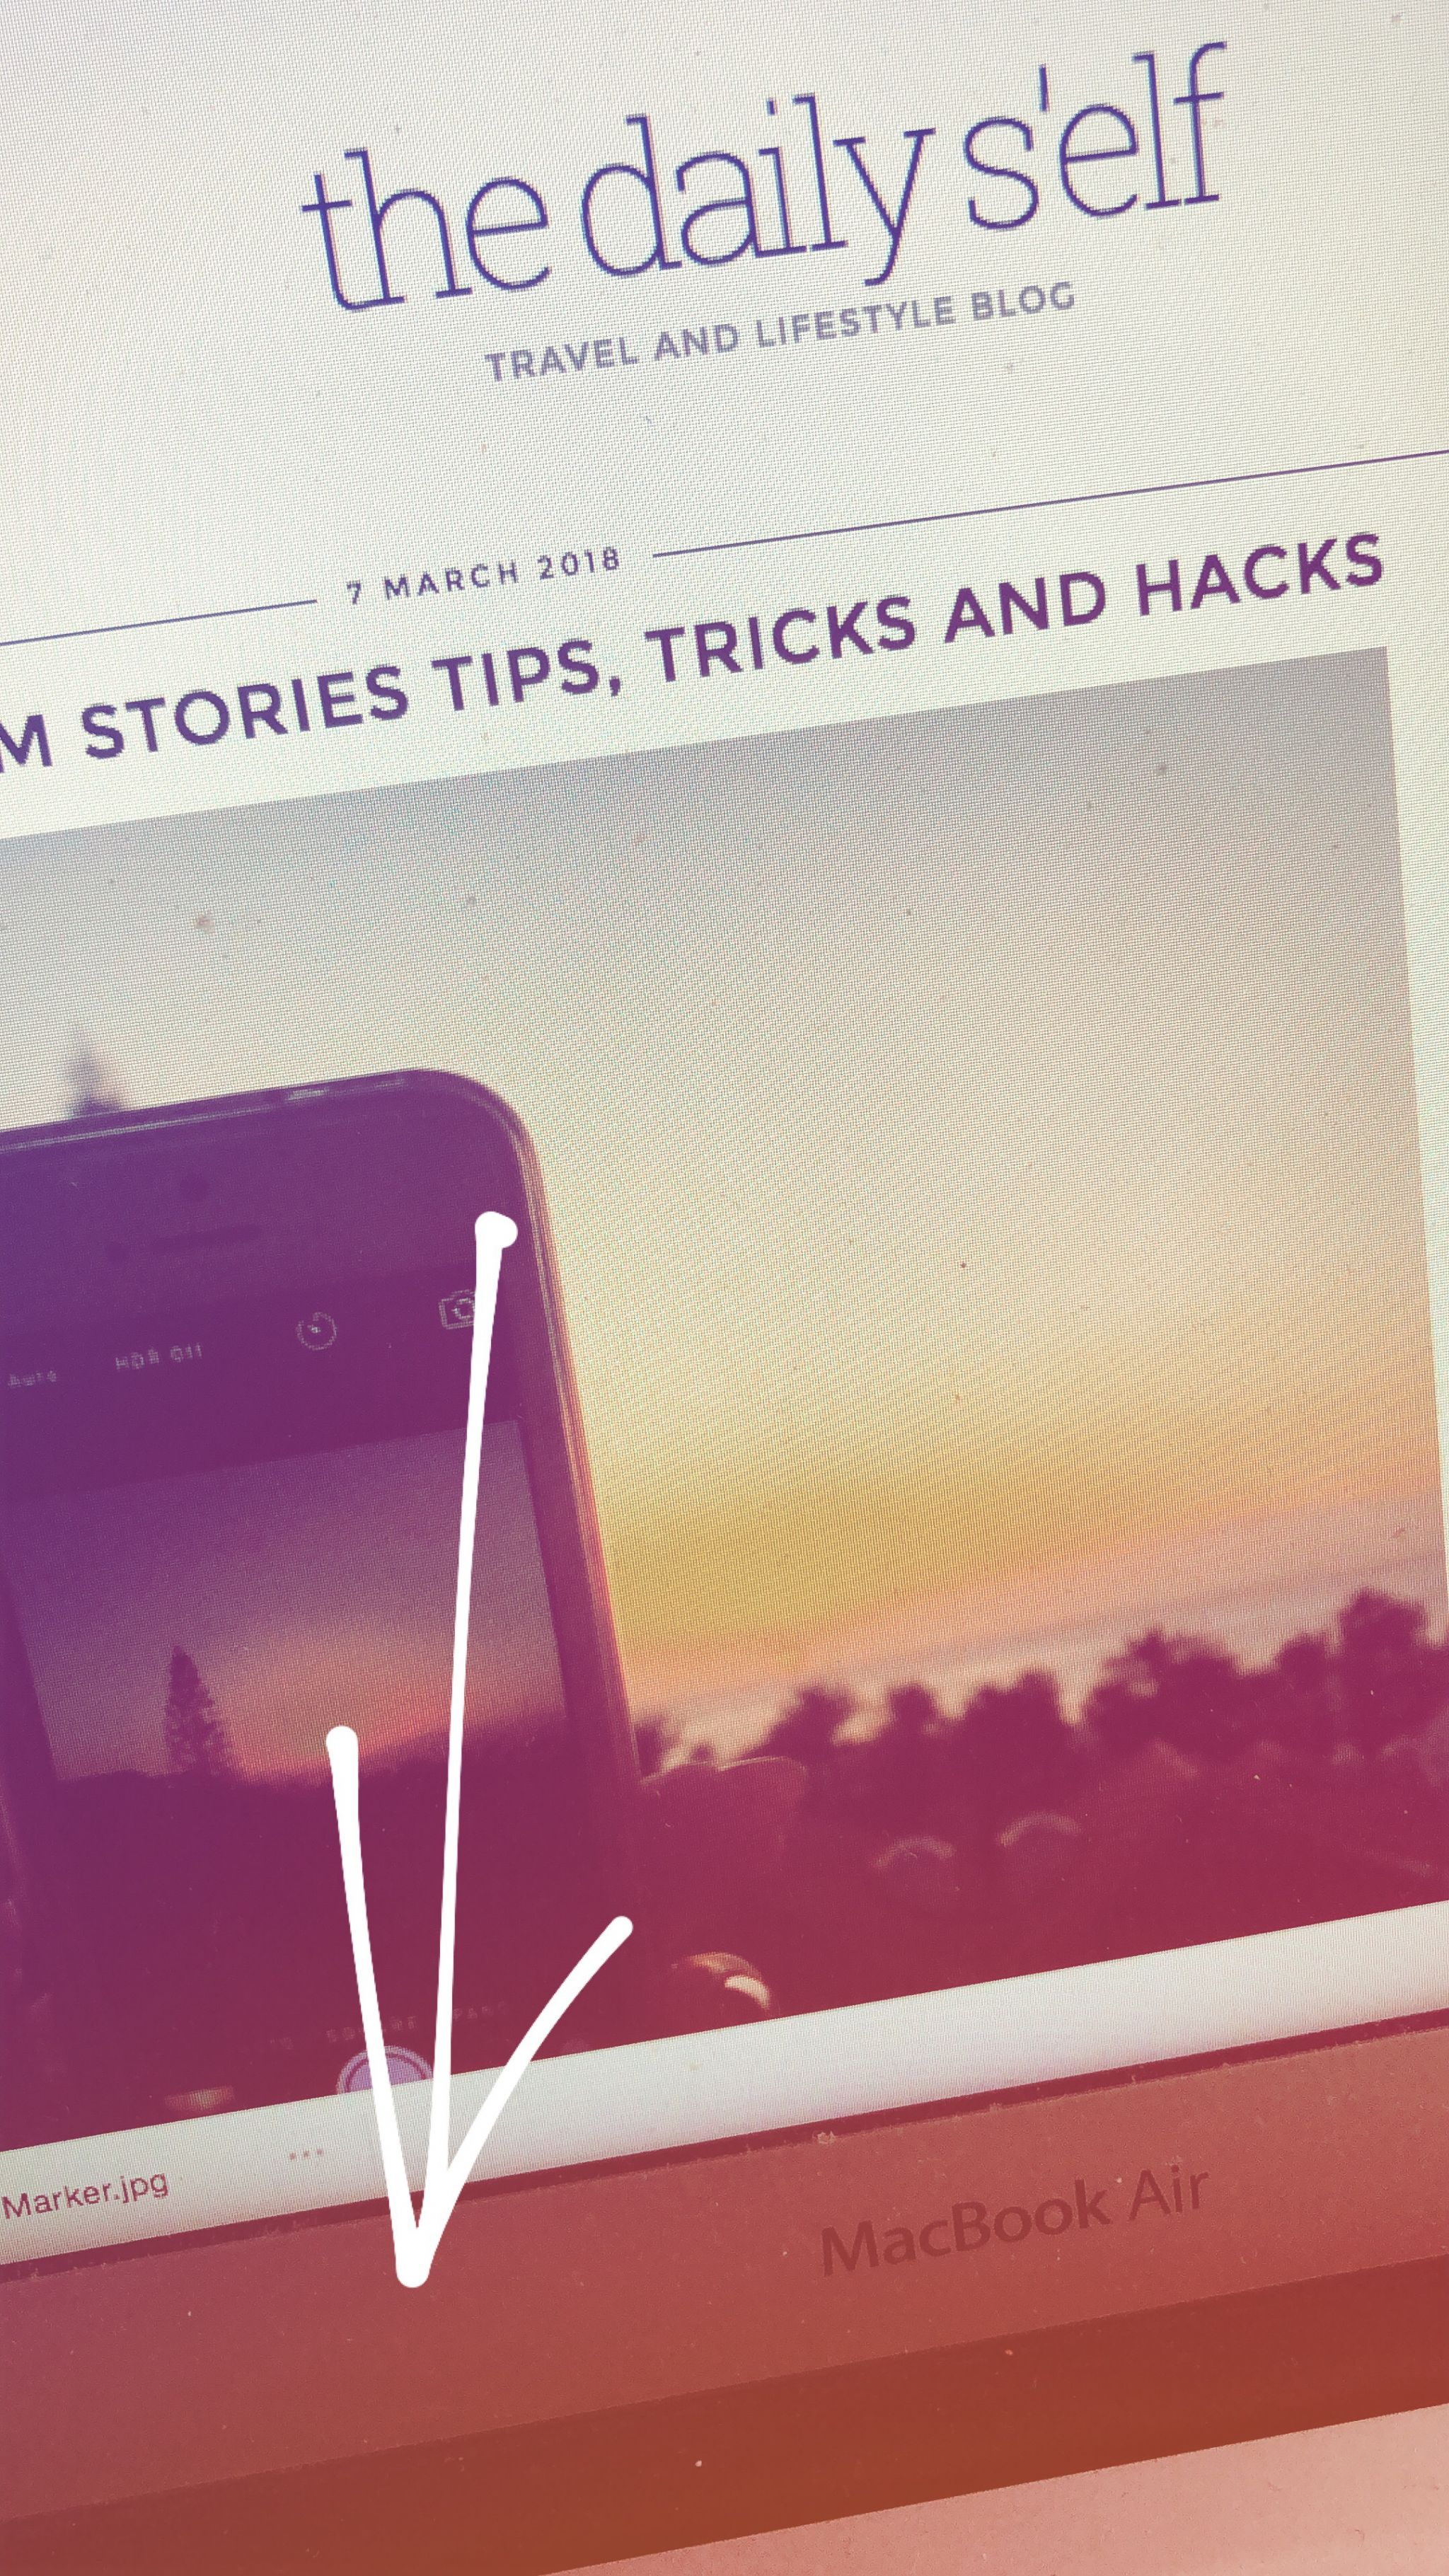 UPDATED: Instagram Stories Tips, Tricks and Hacks: A simple